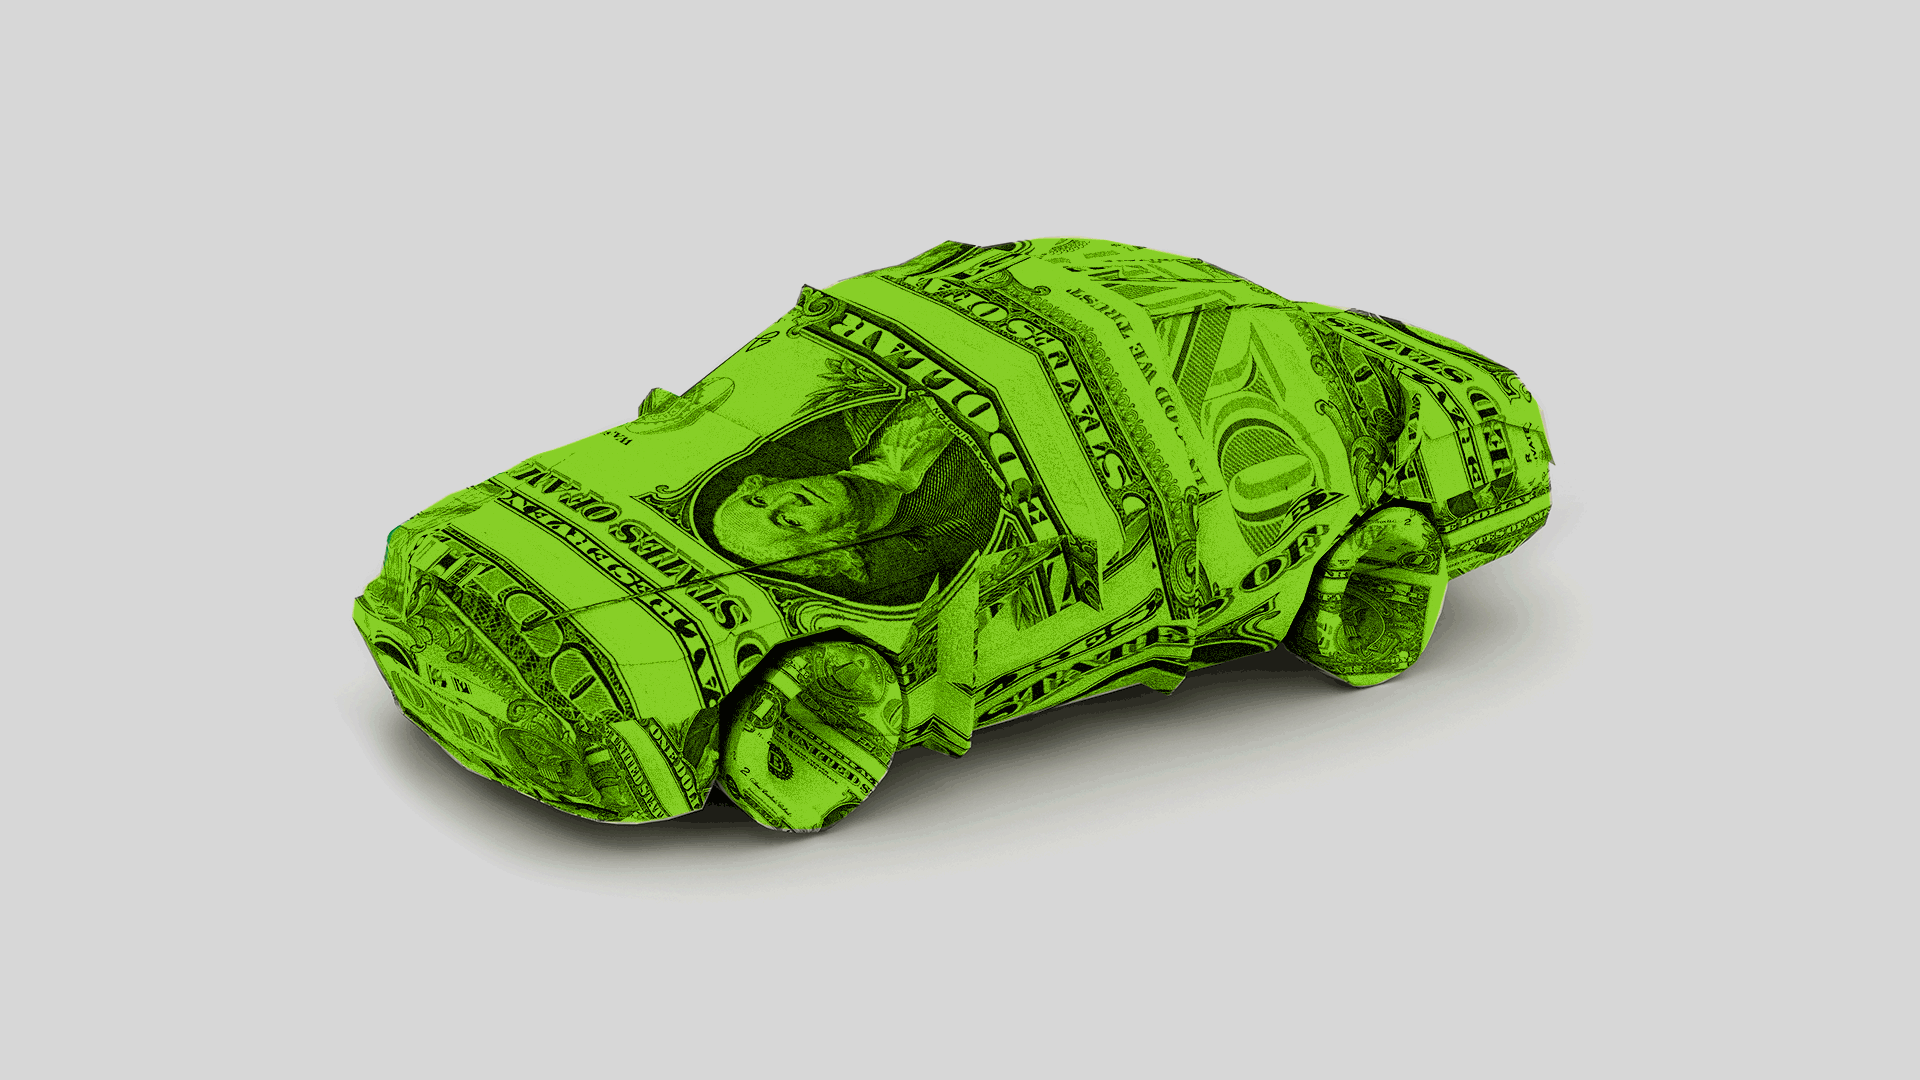 Illustration of a car made out of folded paper money.